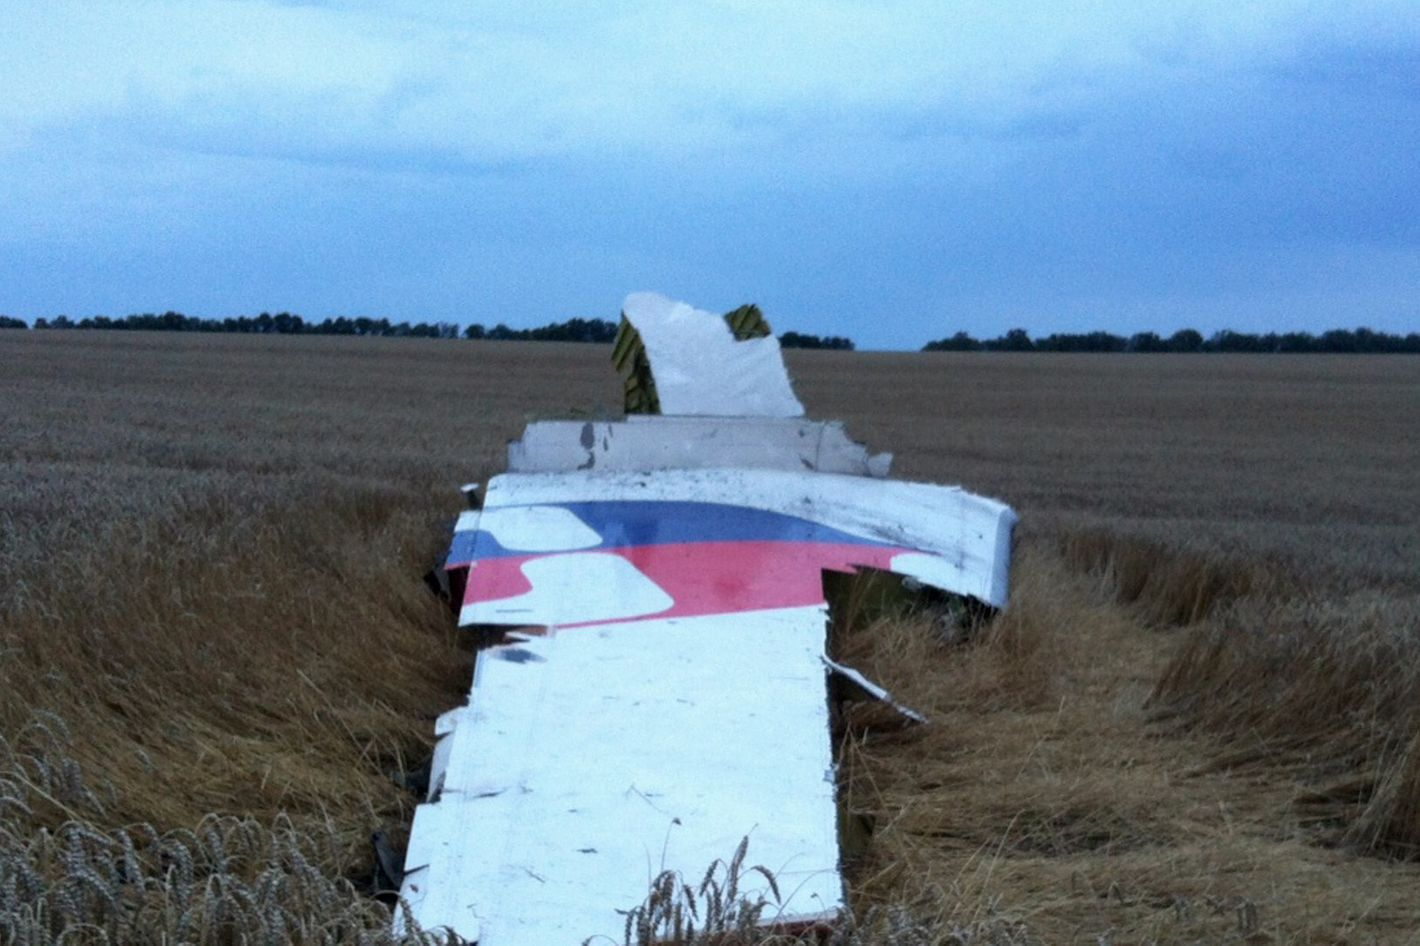 A picture taken on July 17, 2014 shows wreckages of the malaysian airliner carrying 295 people from Amsterdam to Kuala Lumpur after it crashed, in rebel-held east Ukraine. Pro-Russian rebels fighting central Kiev authorities claimed on Thursday that the Malaysian airline that crashed in Ukraine had been shot down by a Ukrainian jet.